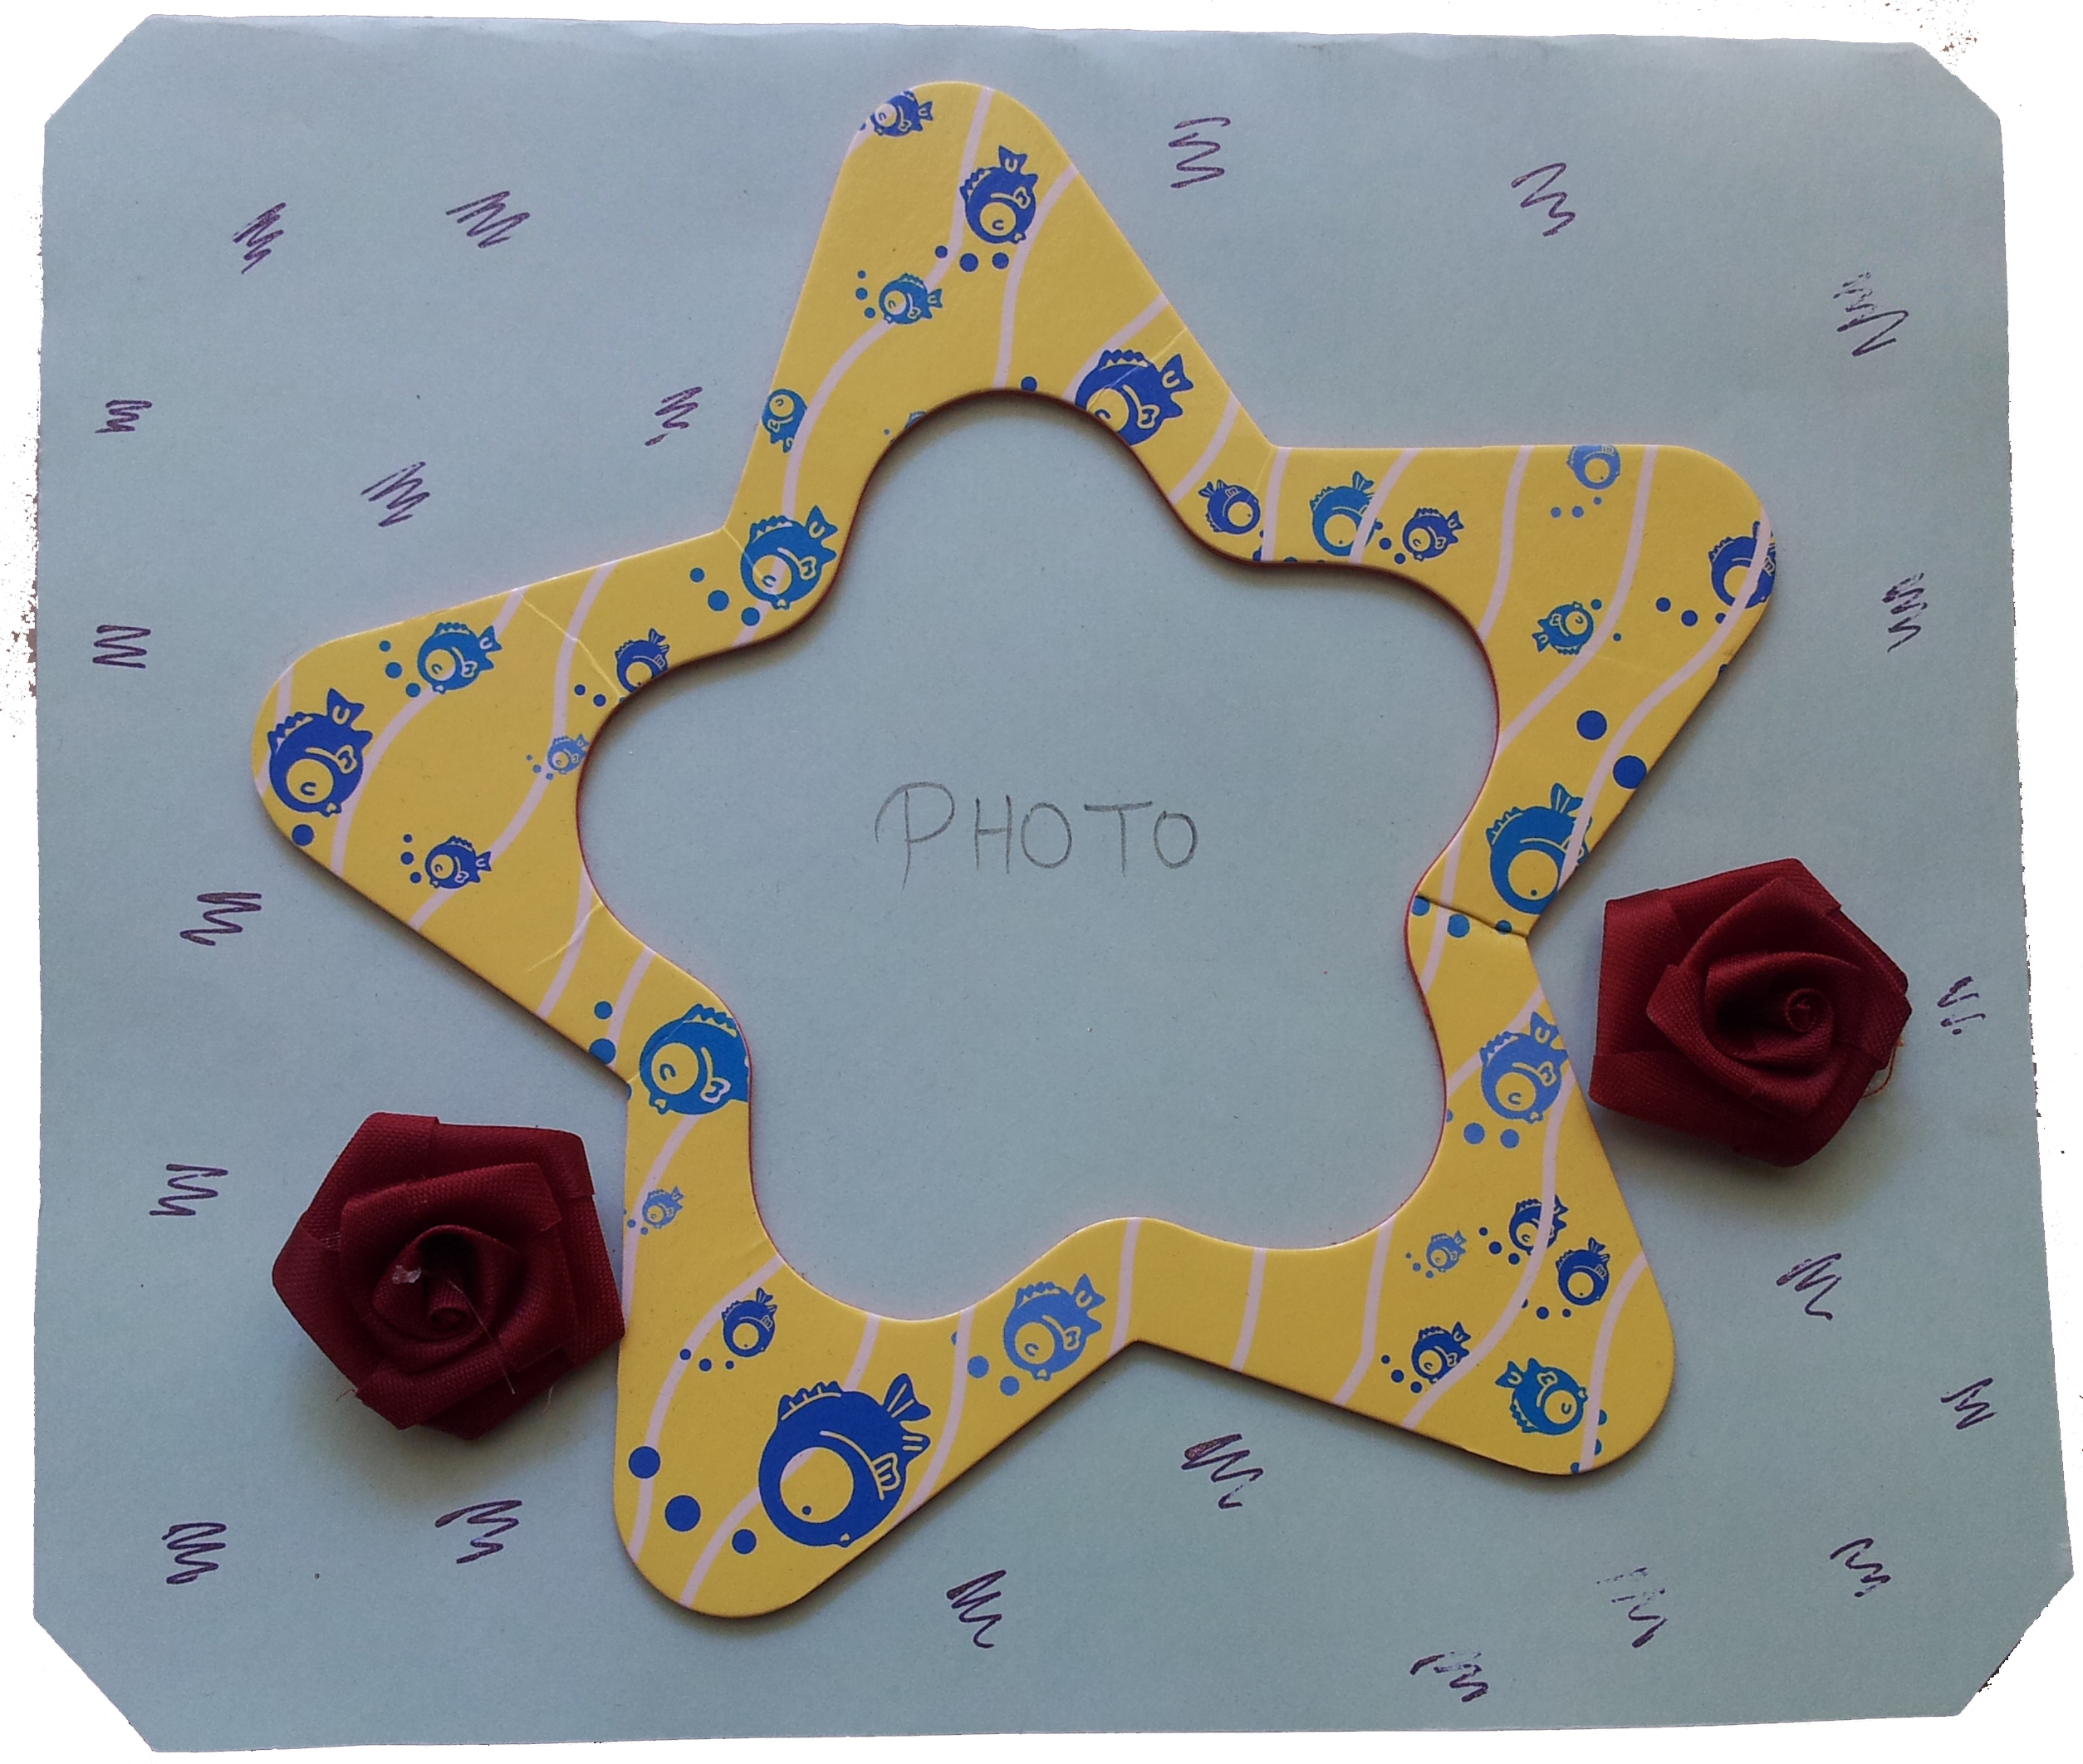 Classy Star And Roses in Valentine Cards